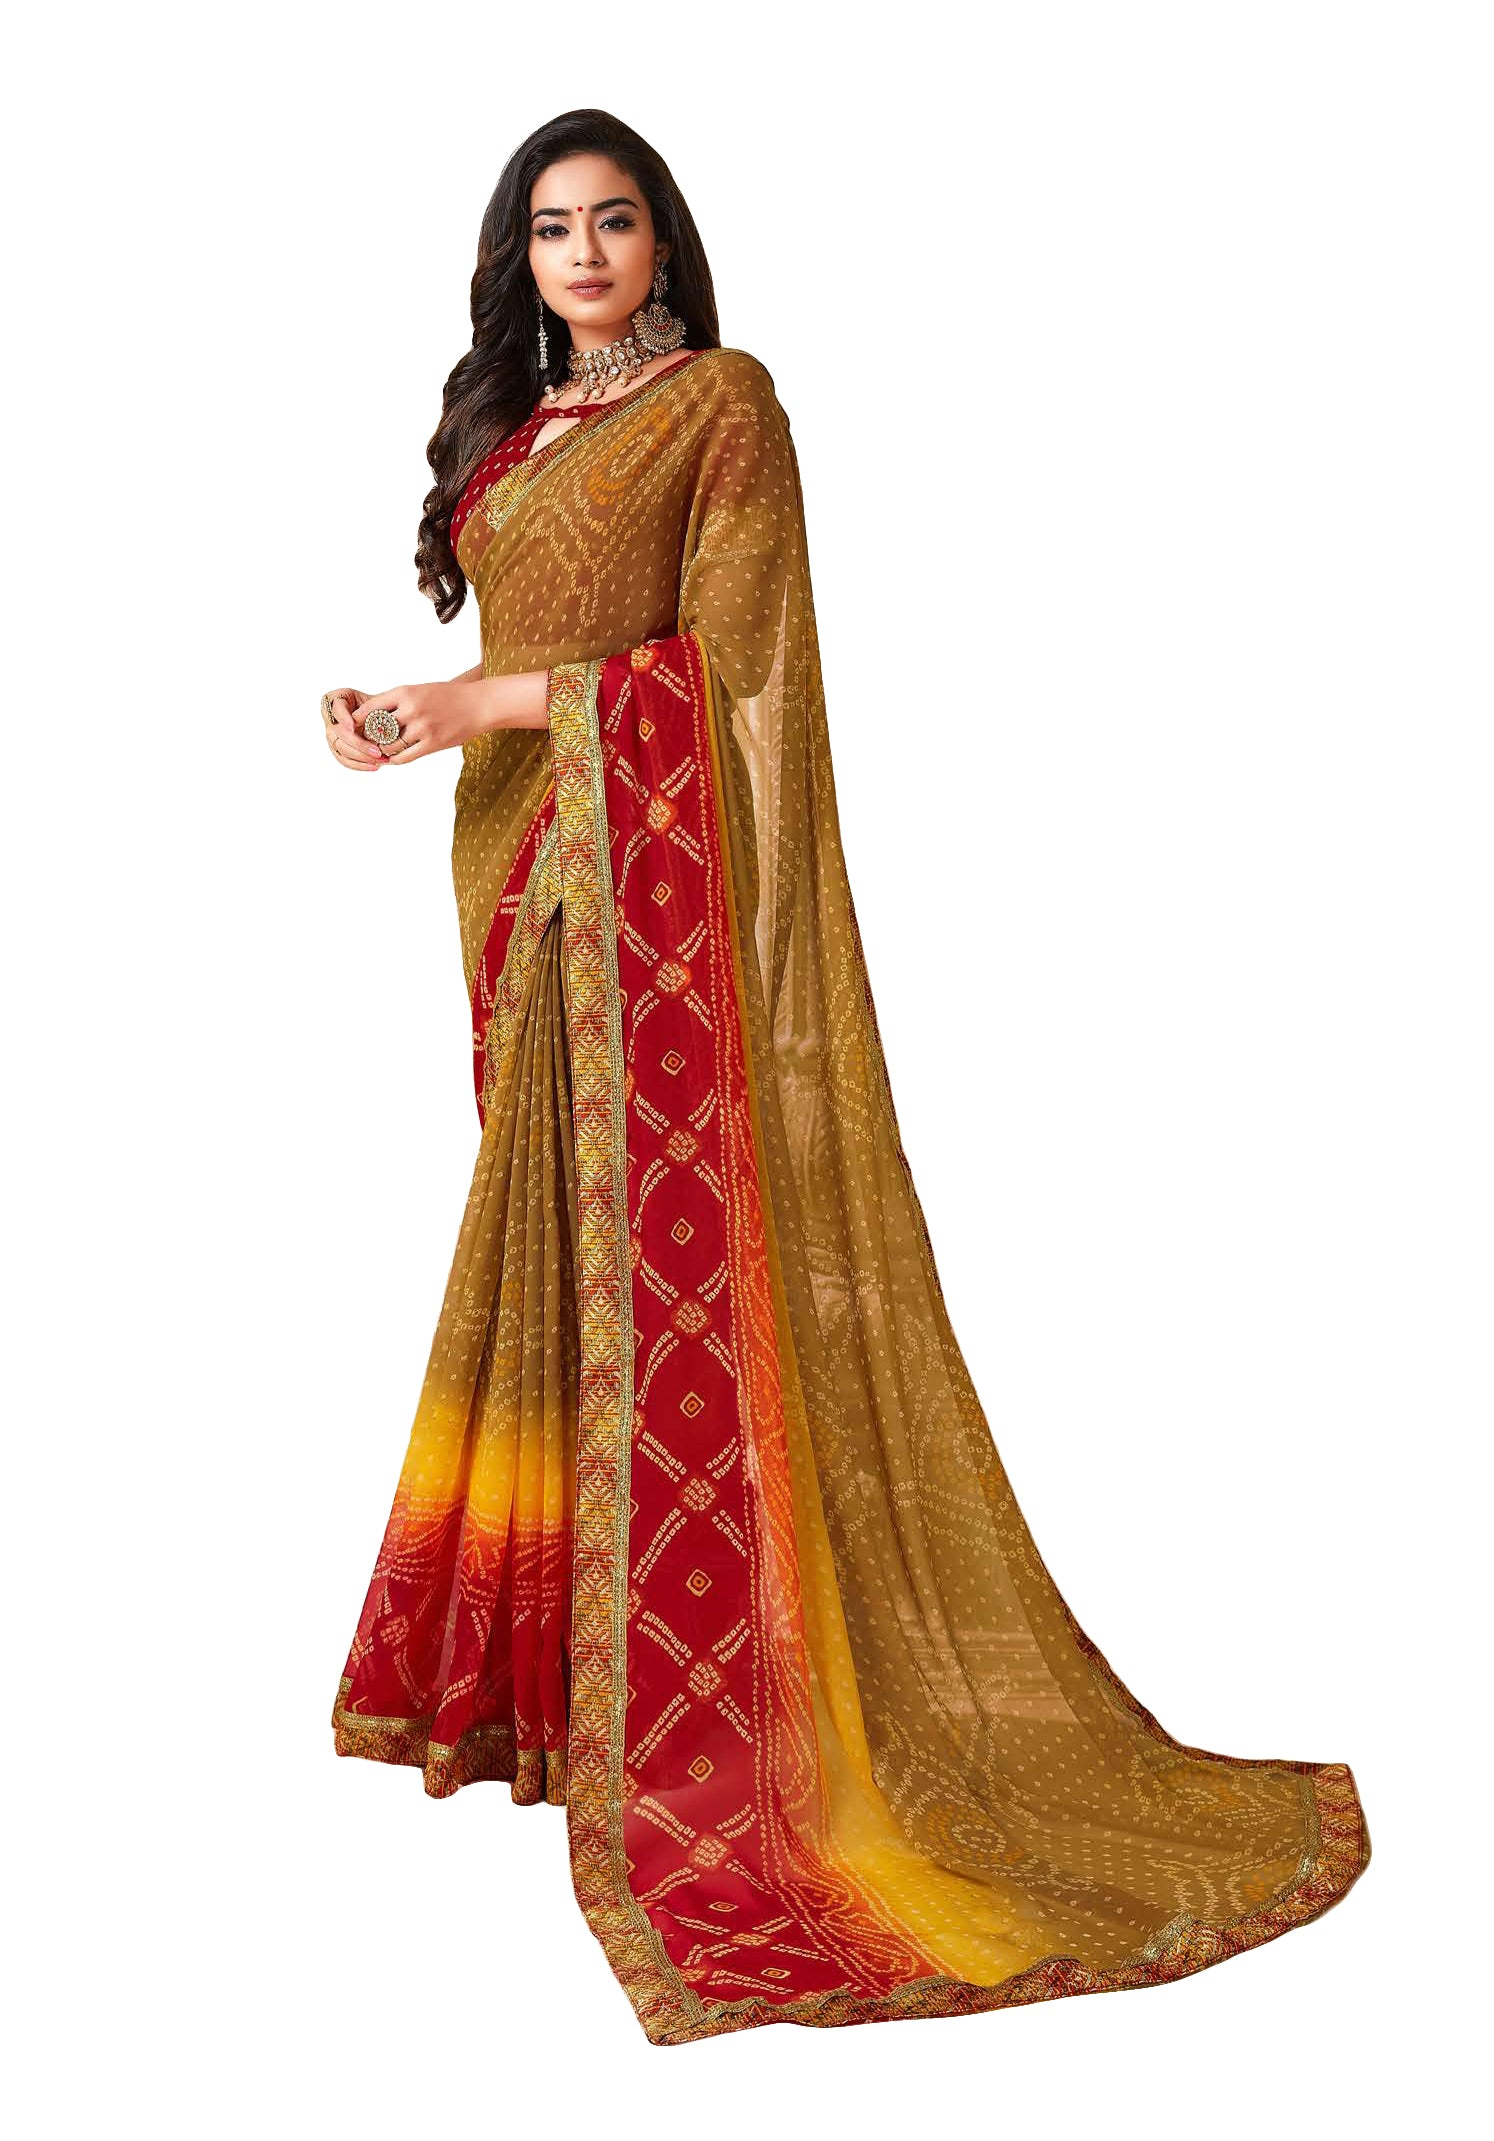 Sanskar Resham Ki Dor BandhaniPrinted Georgette Saree (Multicolor) By Indians Boutique